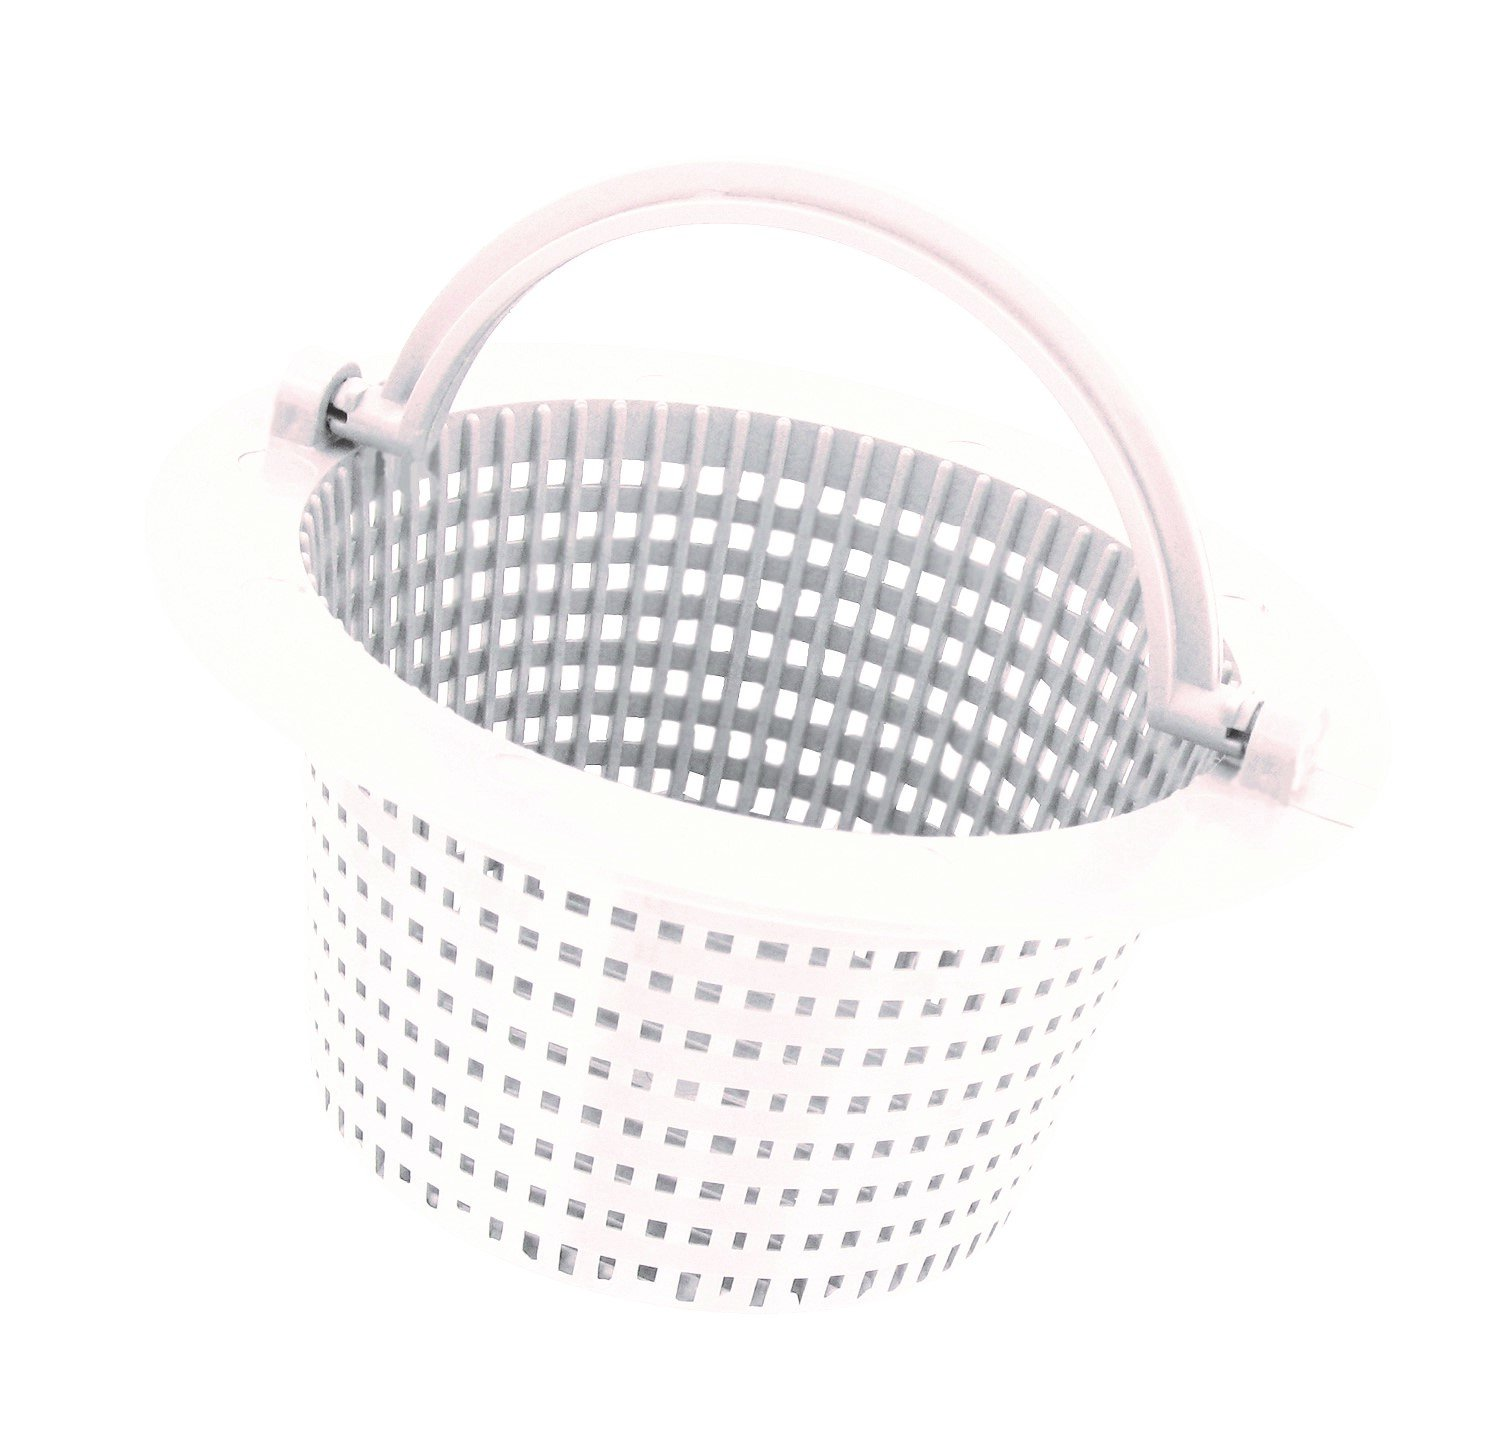 Blue Devil B8503 Skimmer Basket Replacement, White Valterra Products LLC